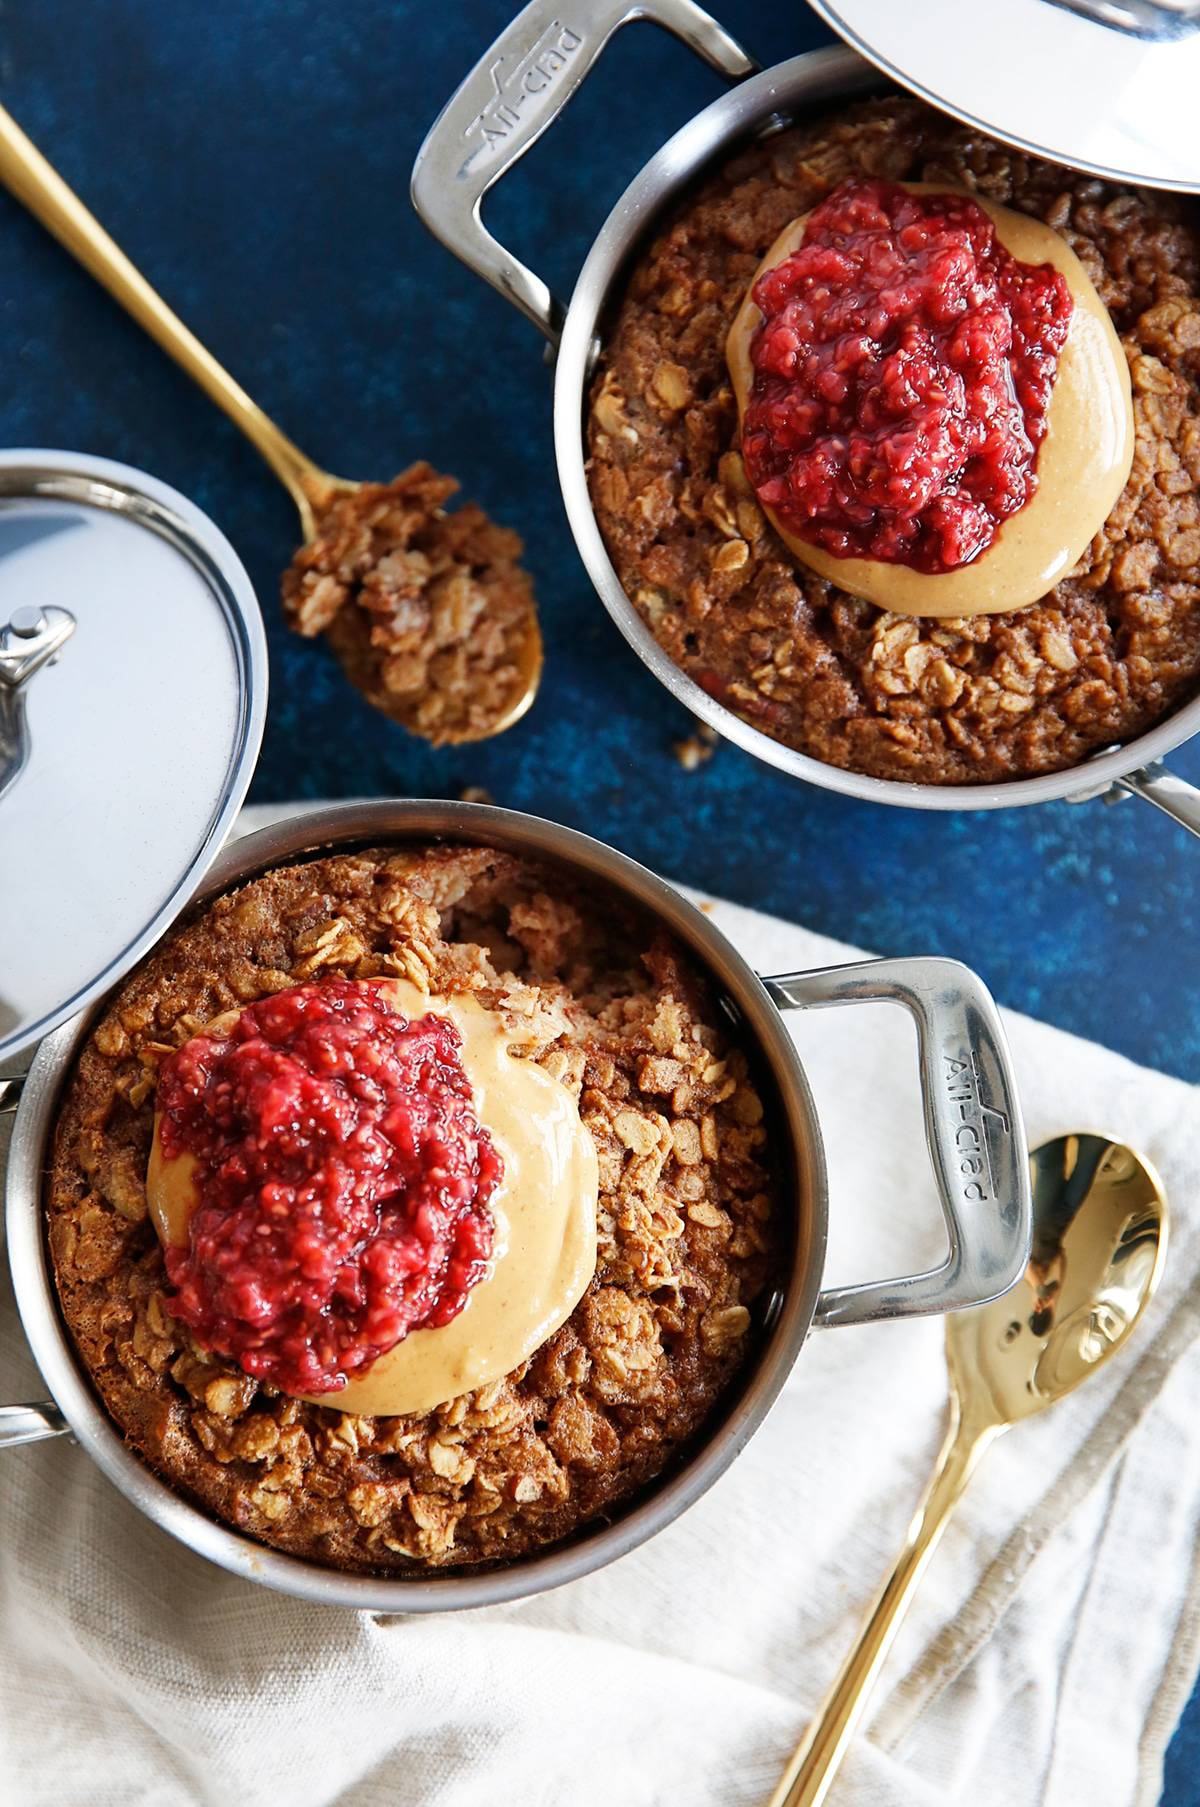 Baked Oatmeal Healthy